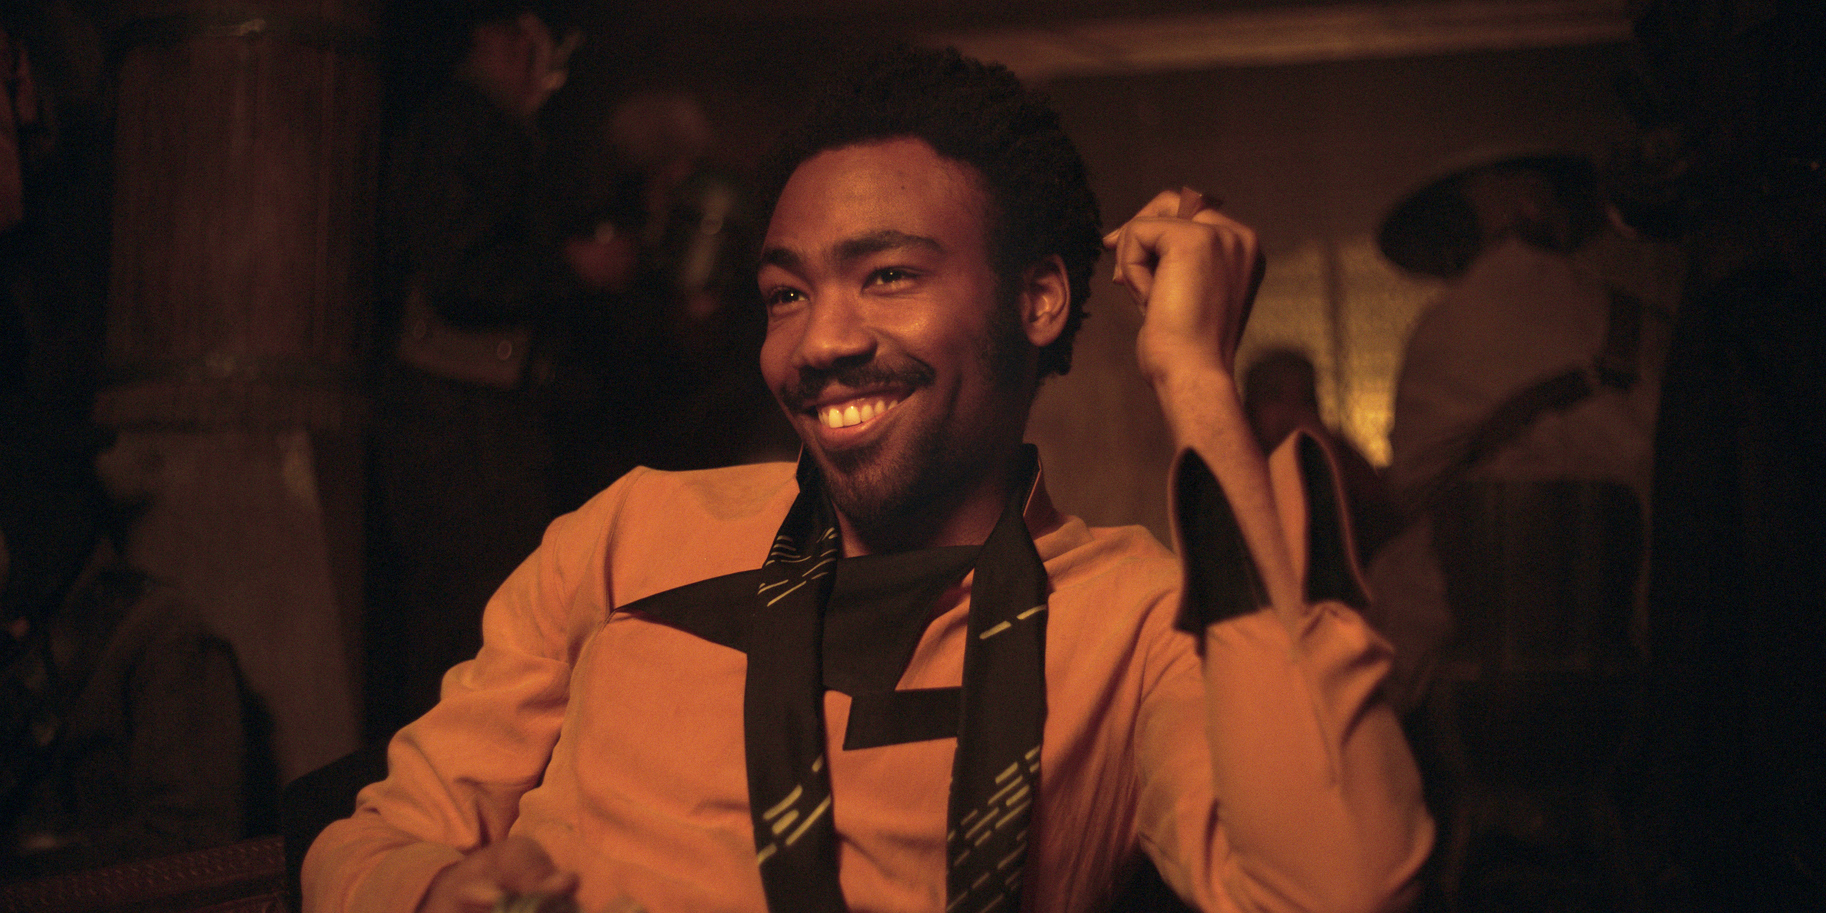 Rumor: Donald Glover tornerà in una serie su Lando Calrissian?